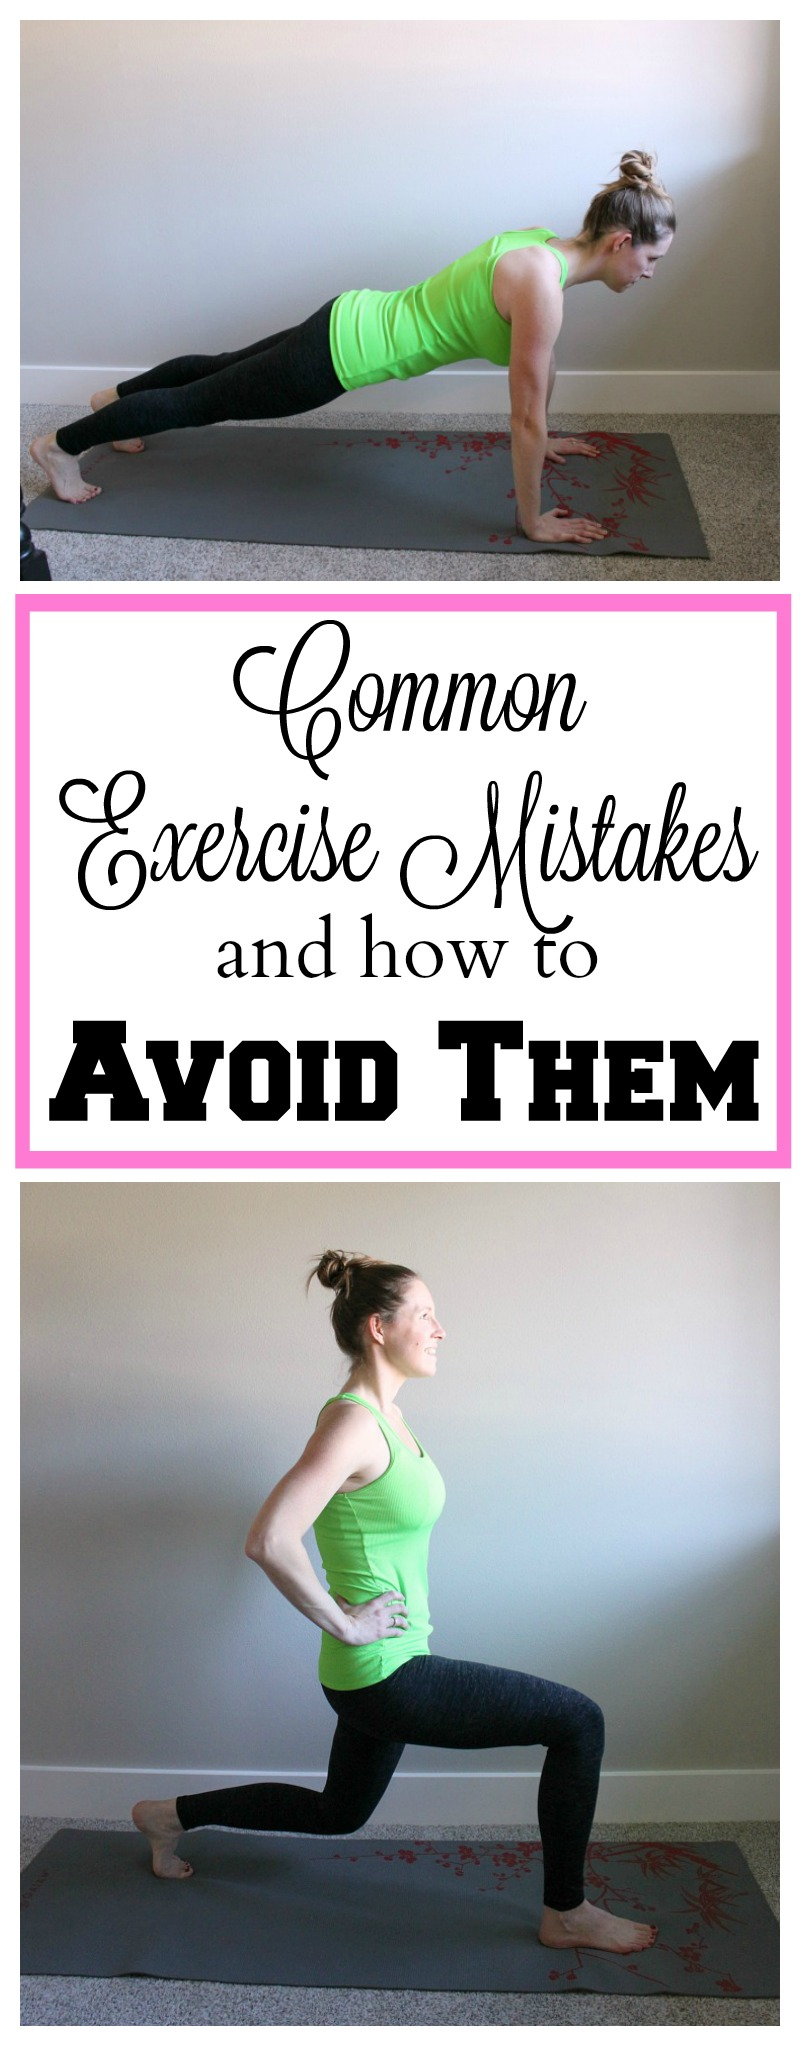 These common exercise mistakes are easy to fix. Make sure you're always using proper form when exercising.